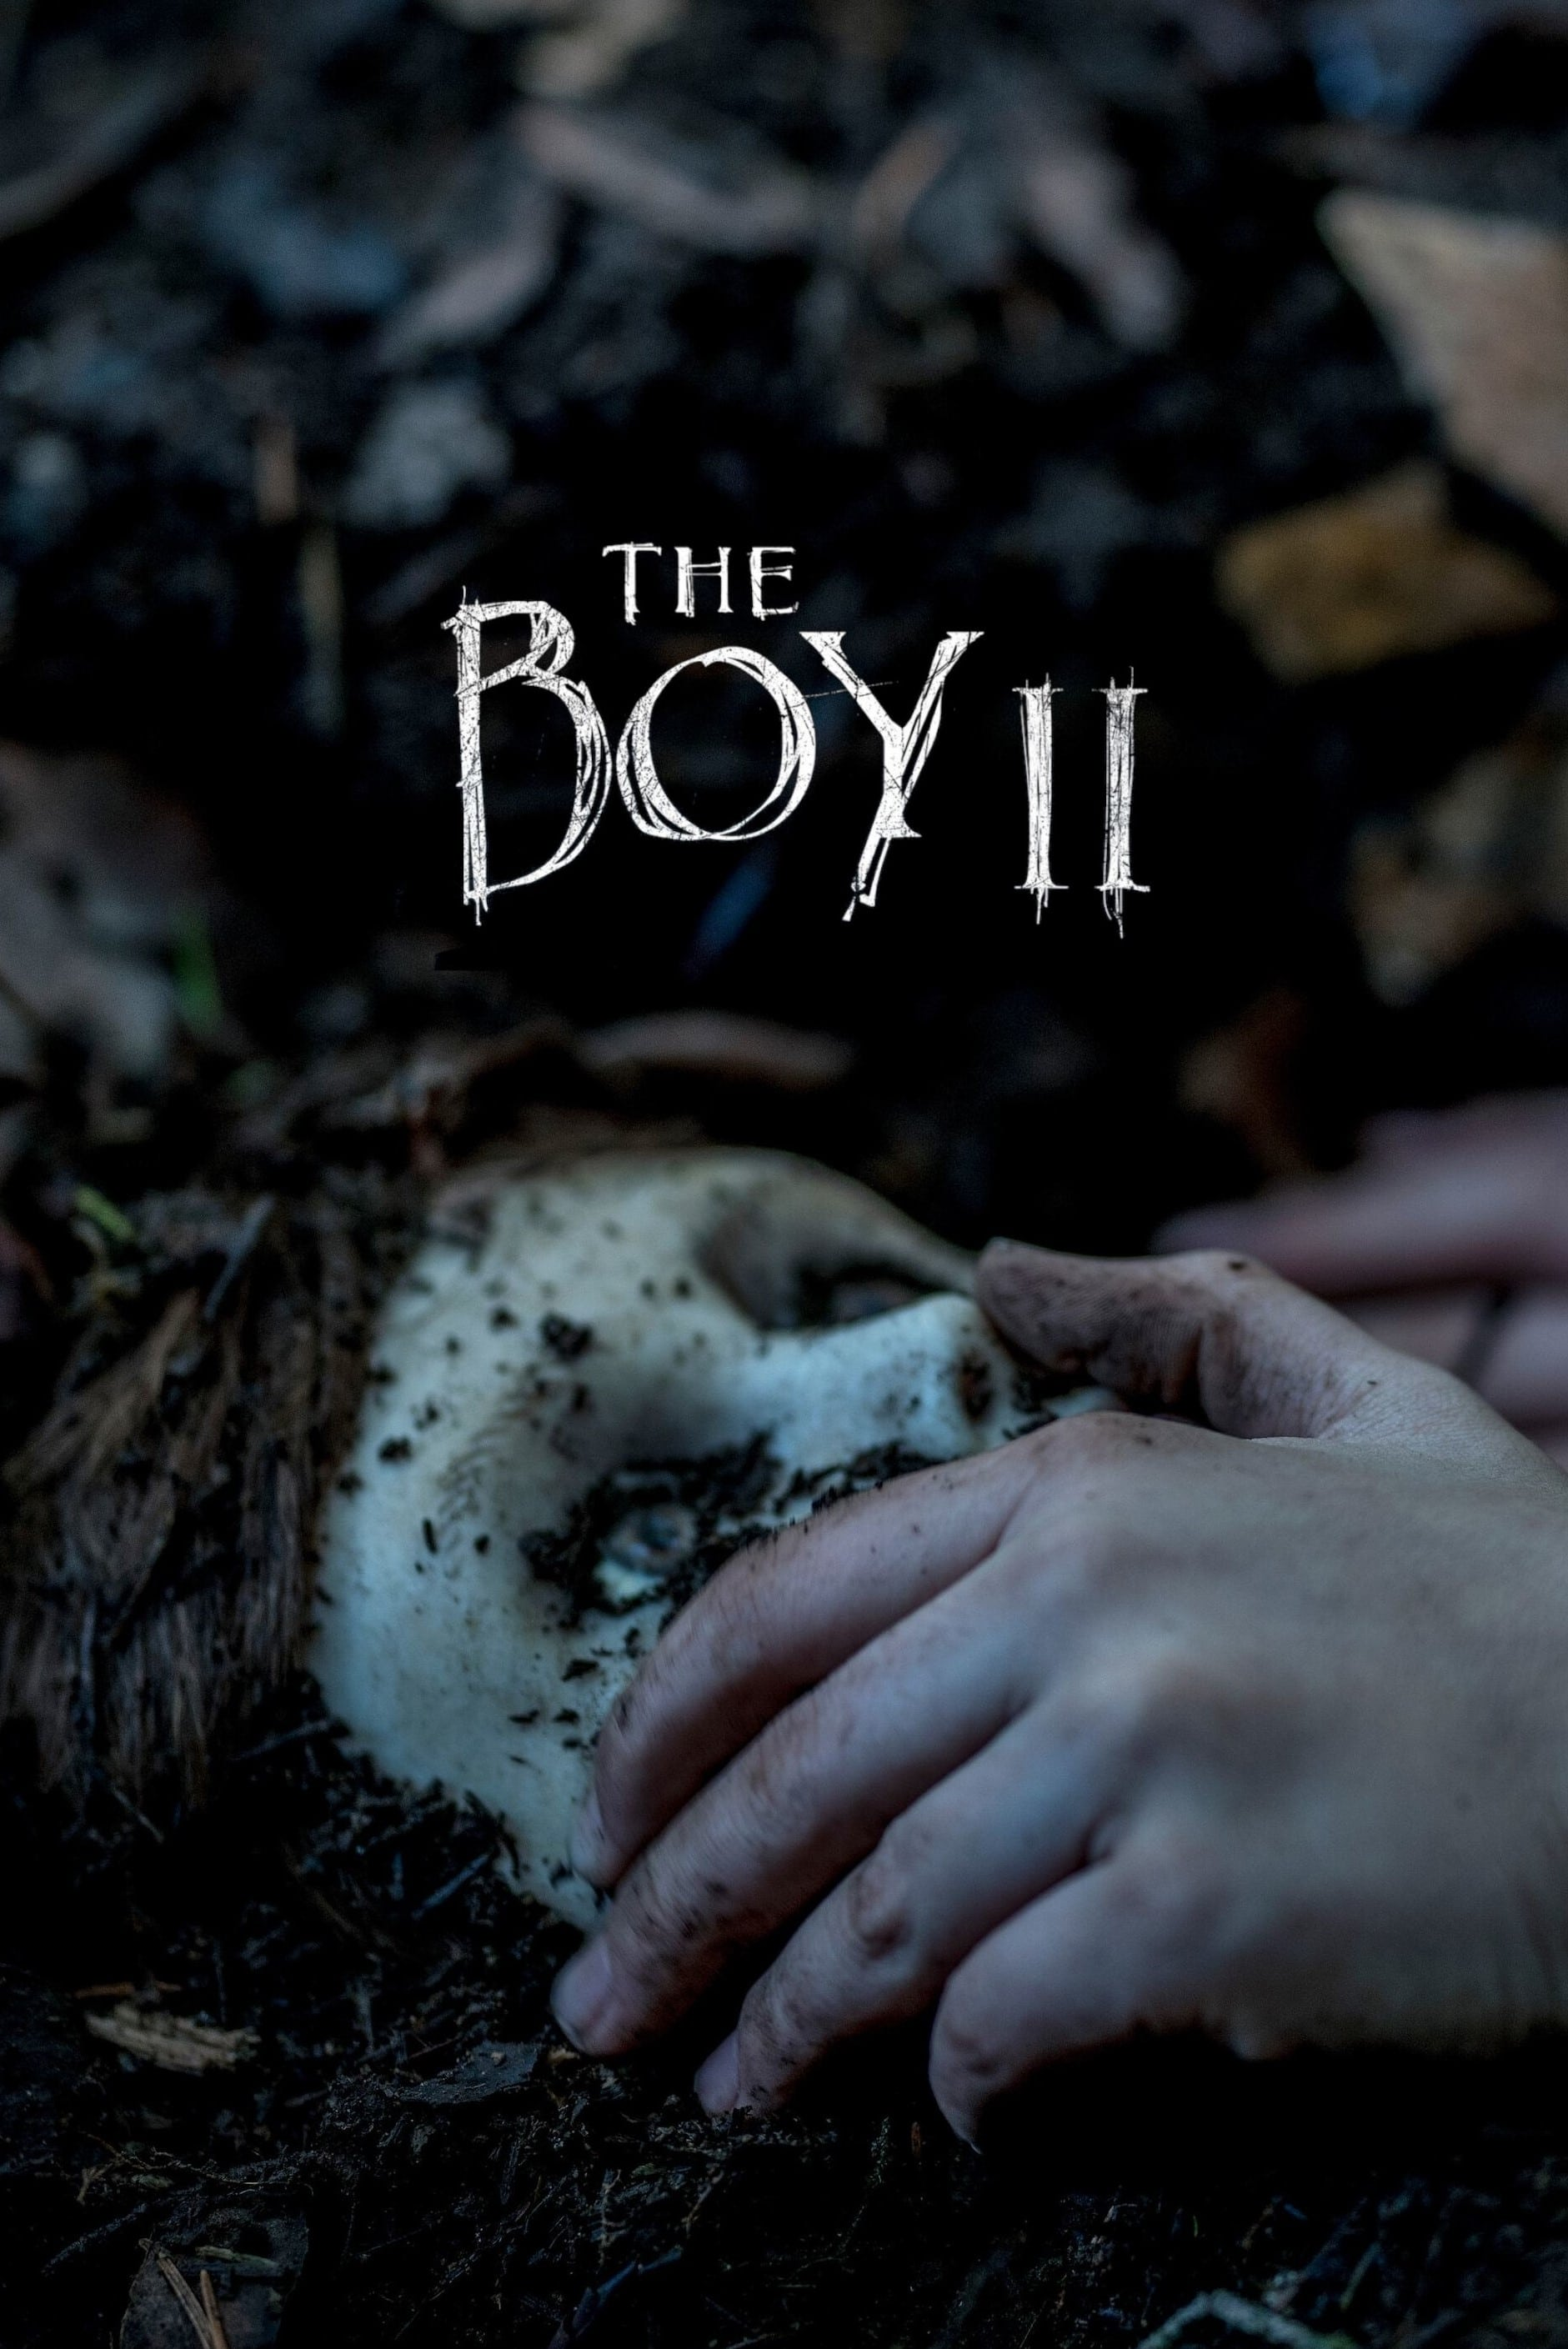 watch Brahms: The Boy II 2019 online free